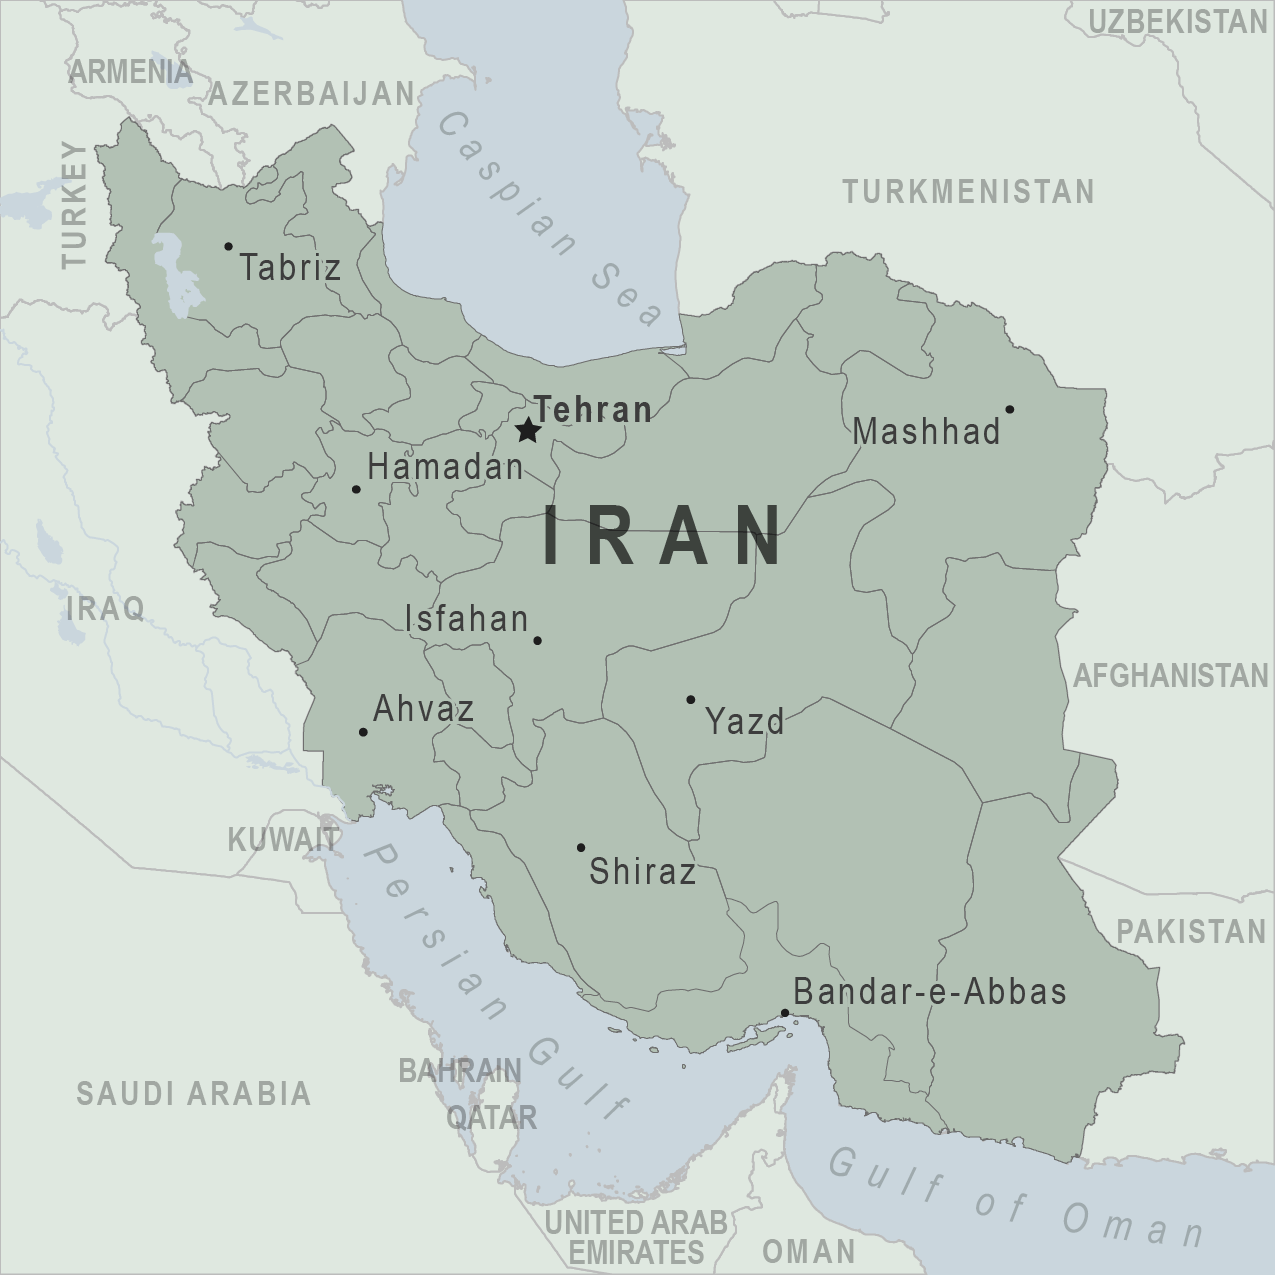 https://i0.wp.com/wwwnc.cdc.gov/travel/images/map-iran.png